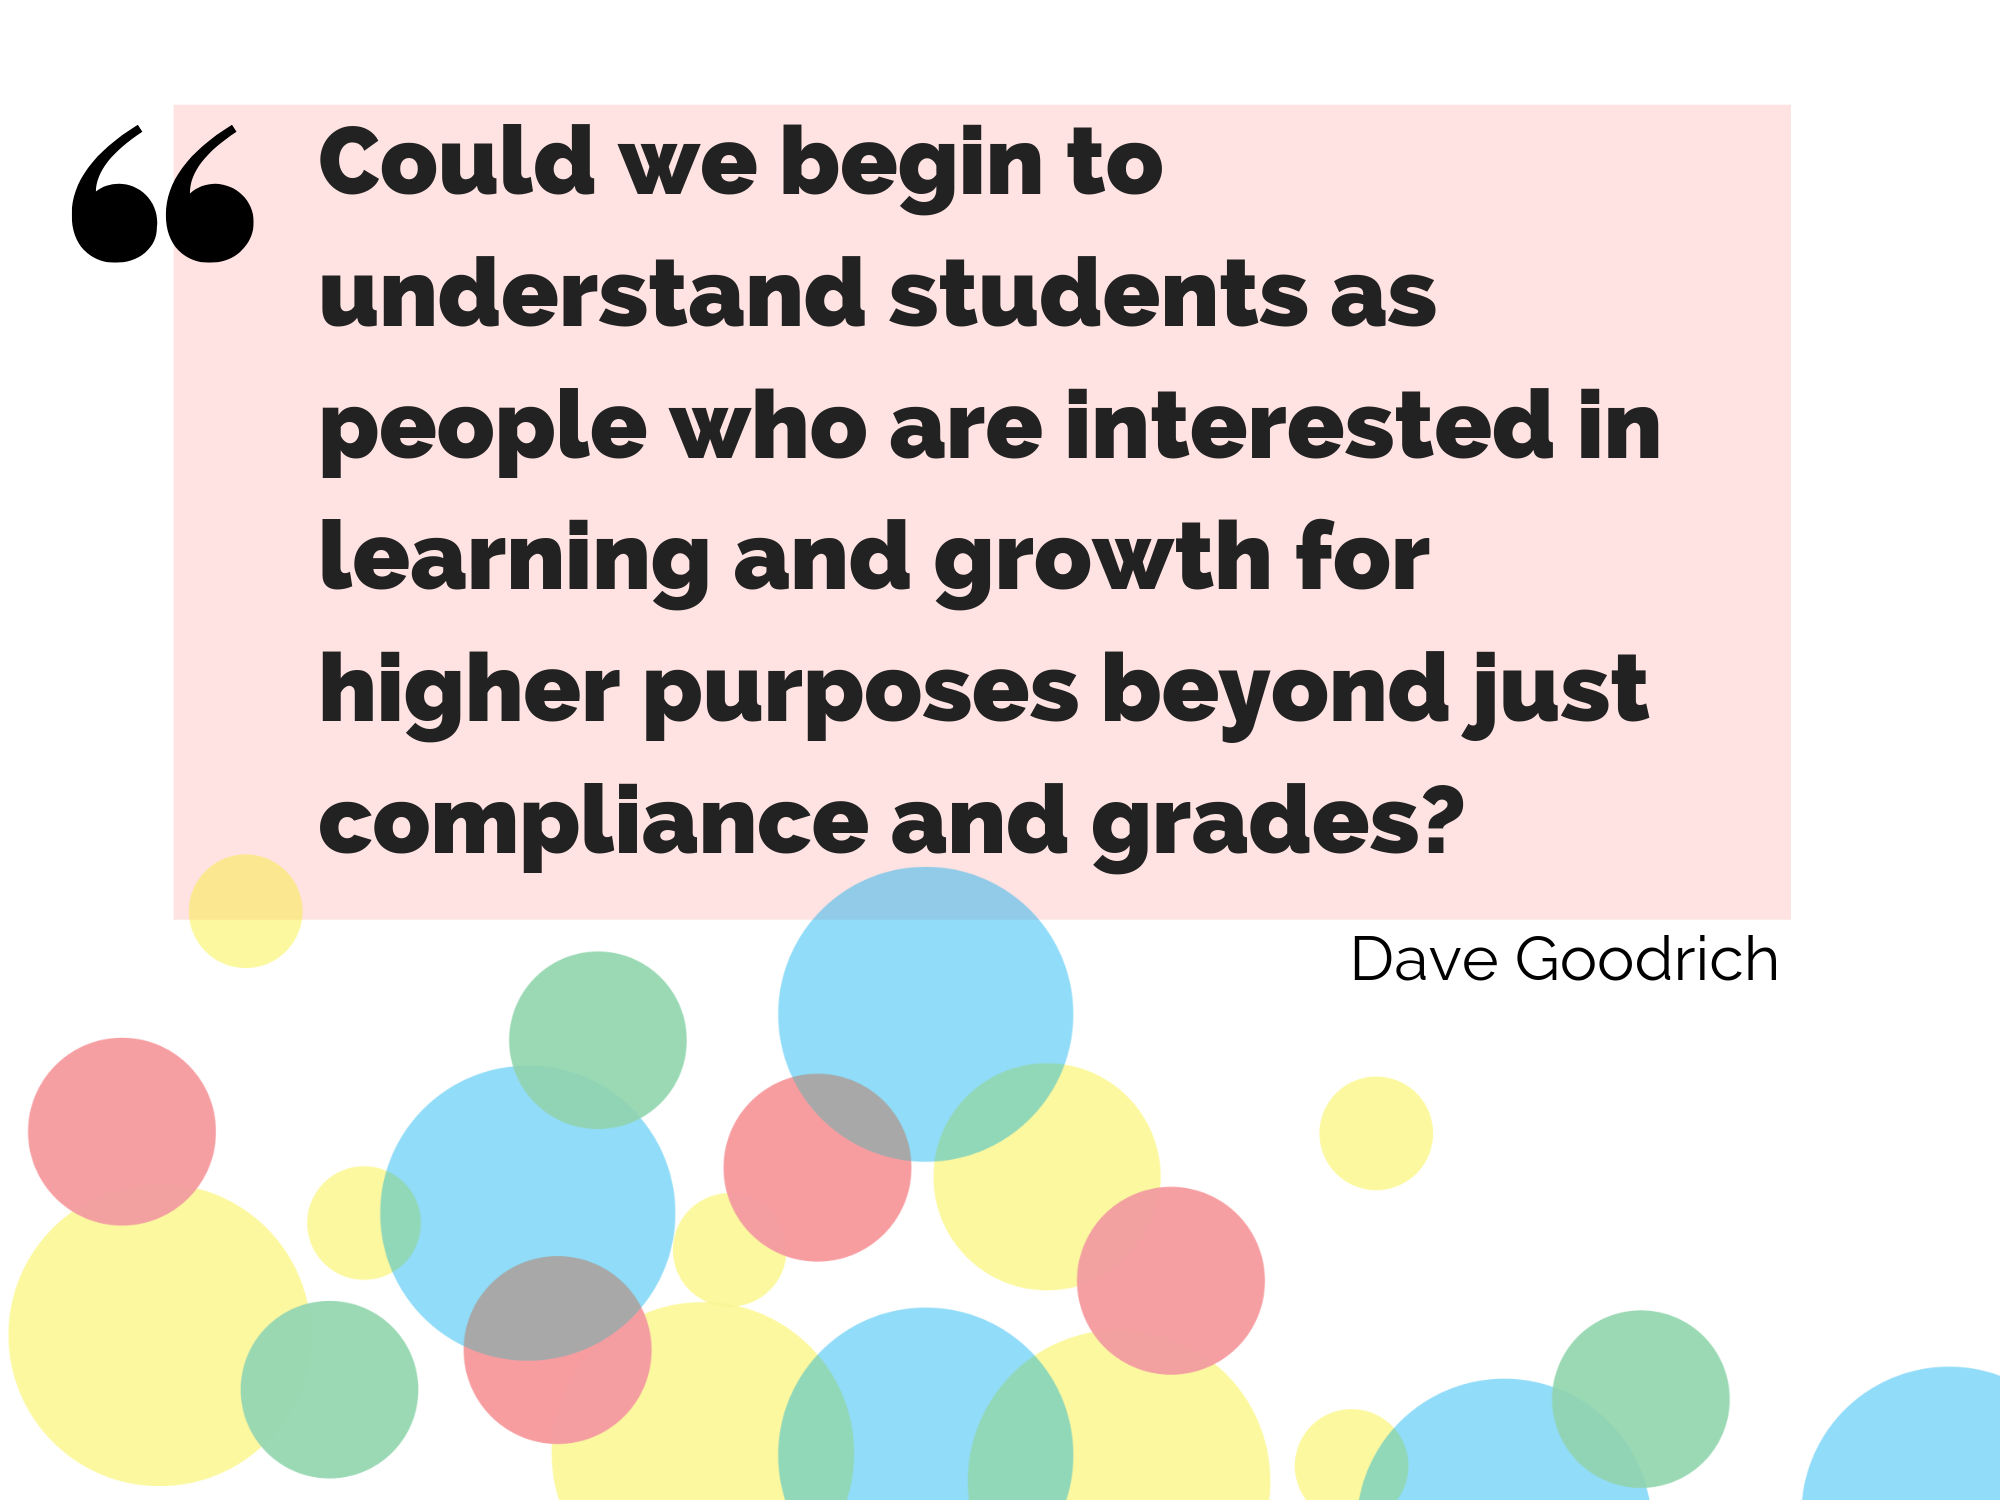 Could we begin to understand students as people who are interested in learning and growth for higher purposes beyond just compliance and grades?